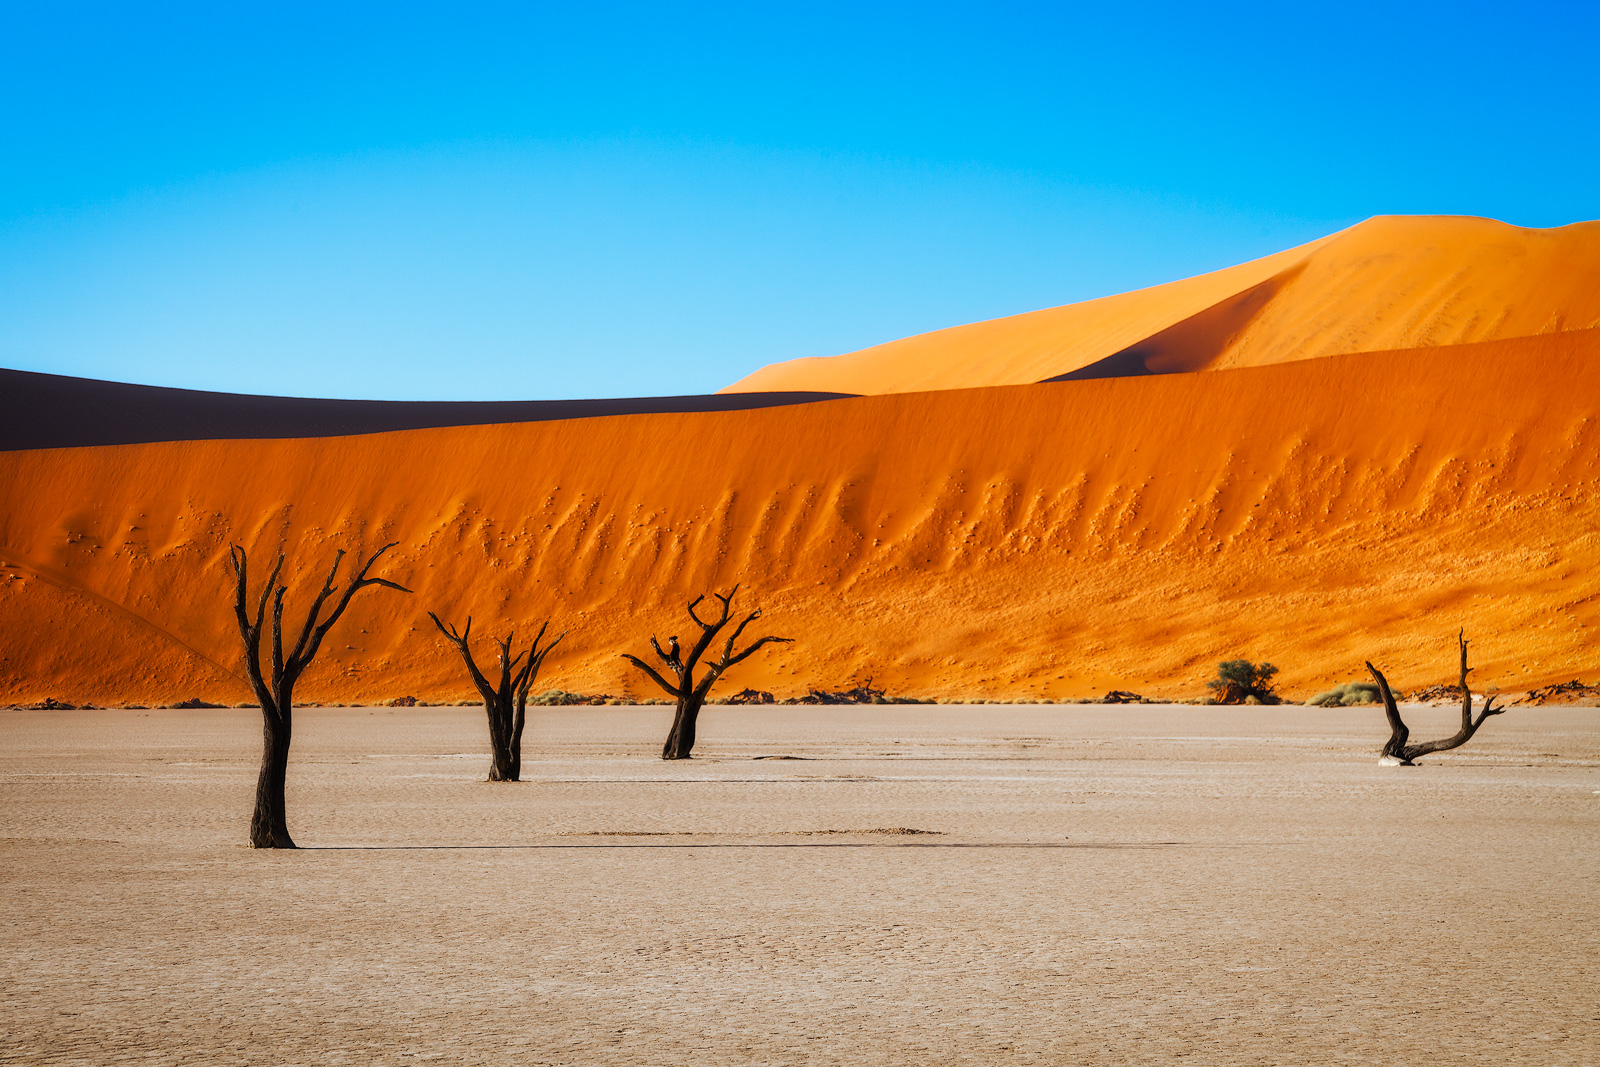 A row of trees create a leading line to the distant orange dunes